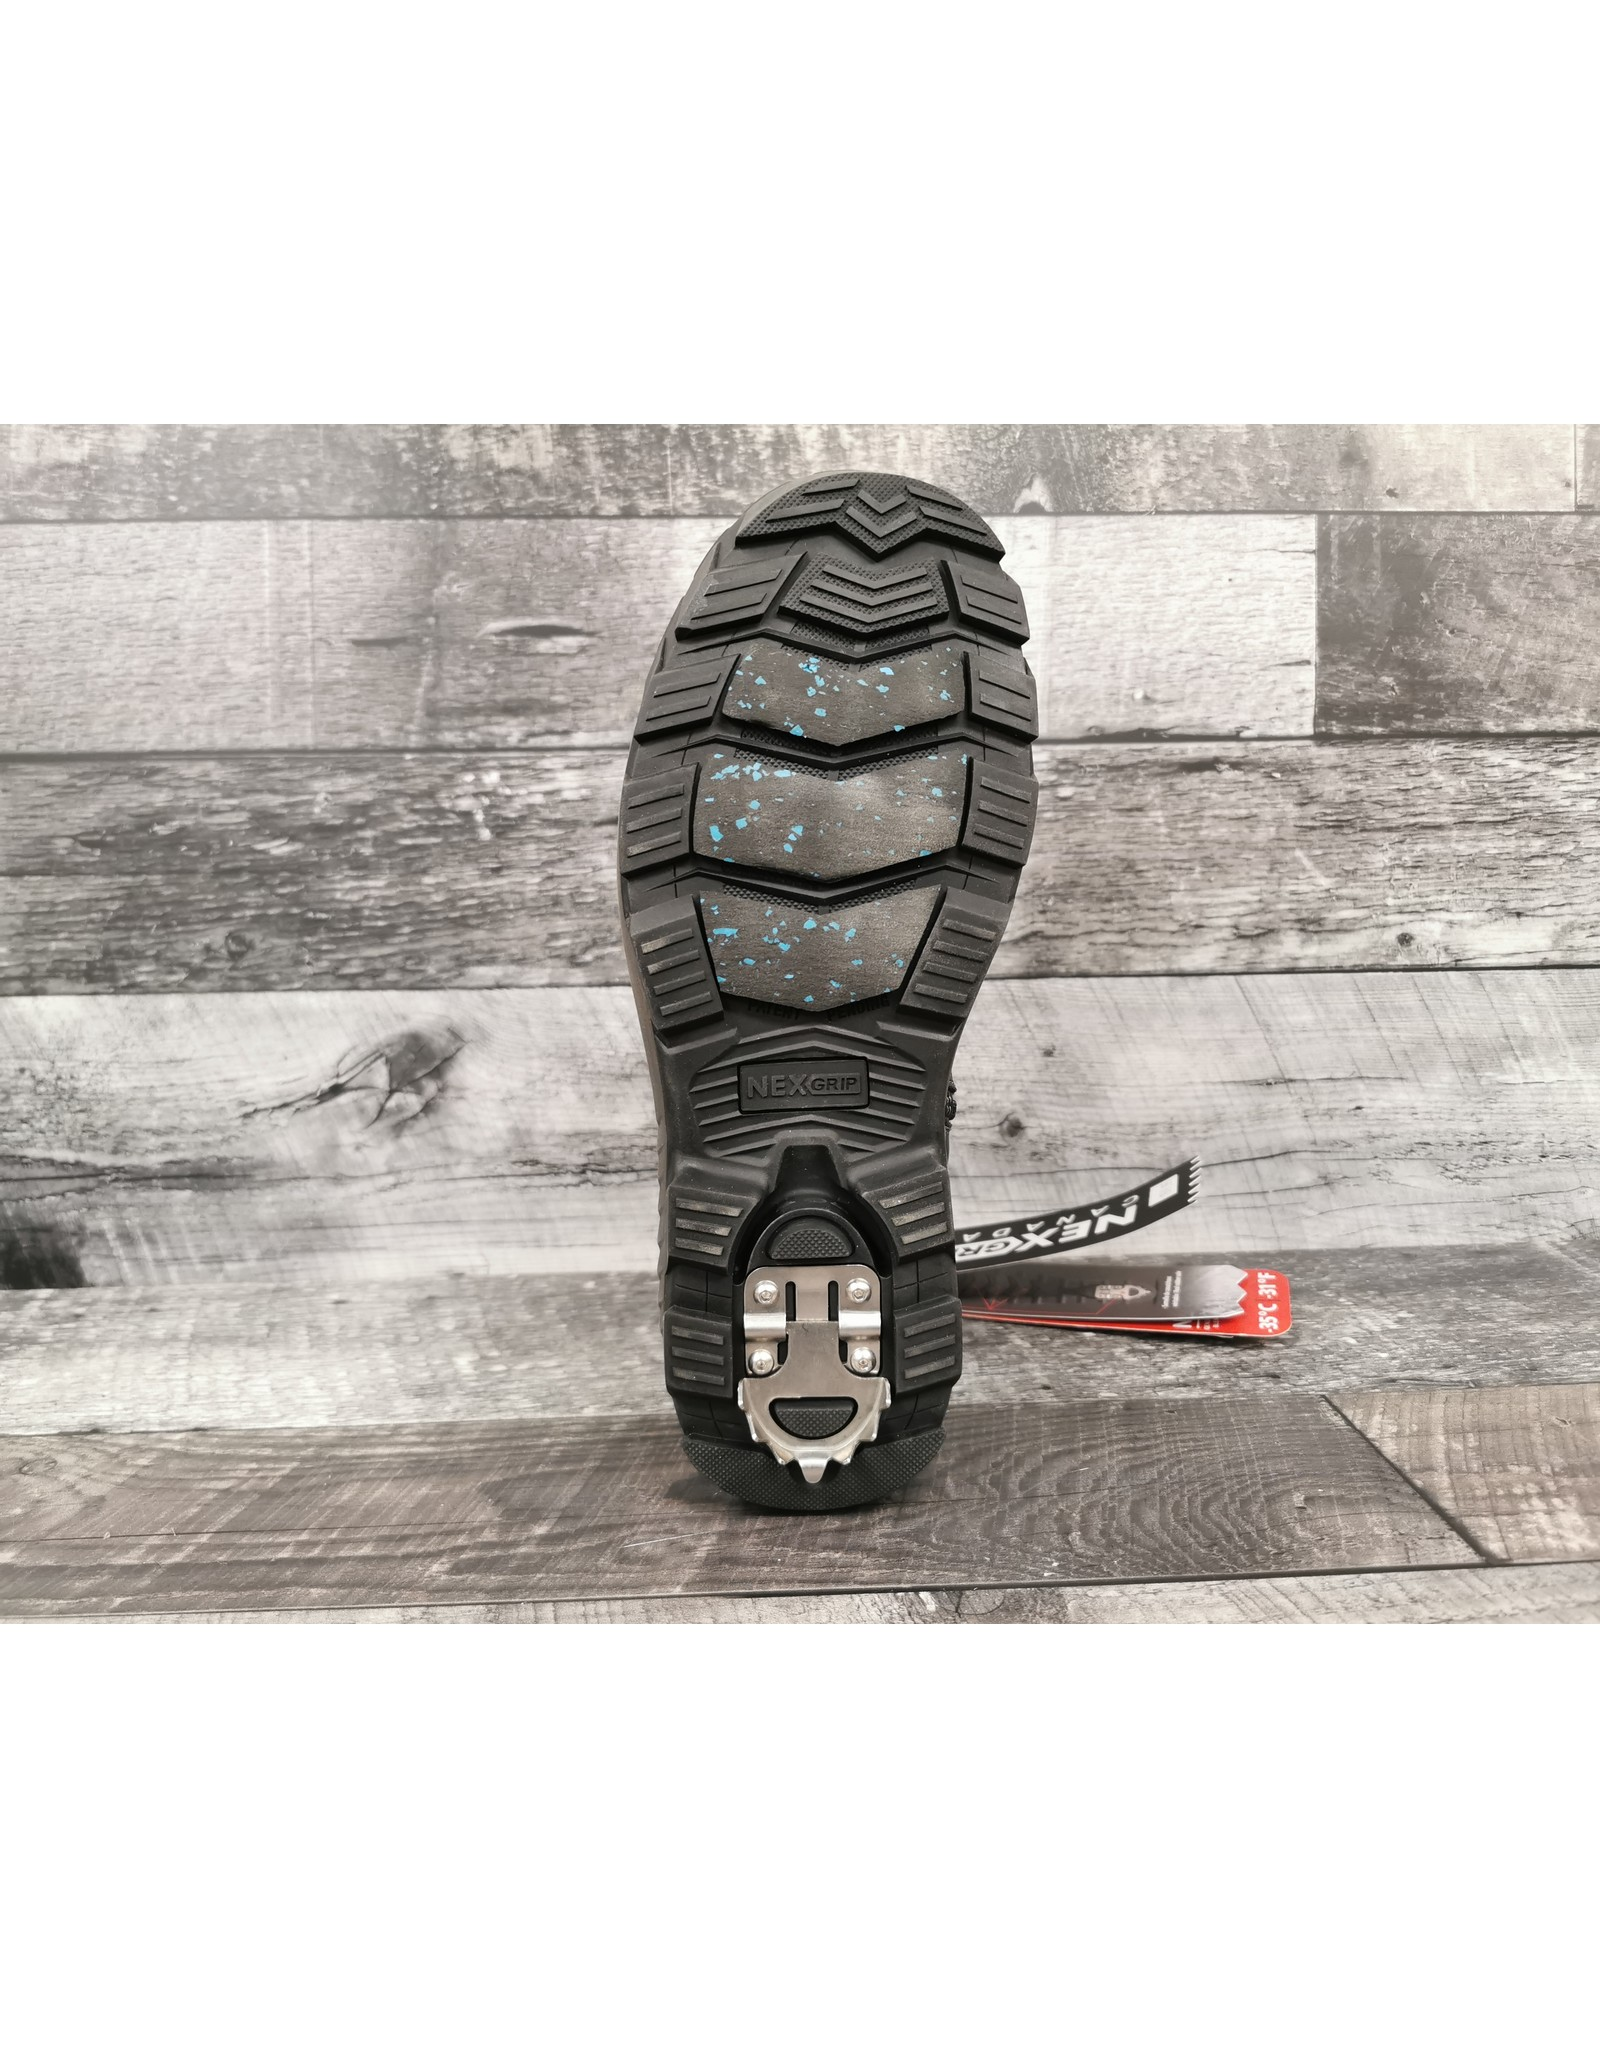 NEXGRIP CANADA ICE VICTOR WINTER BOOT